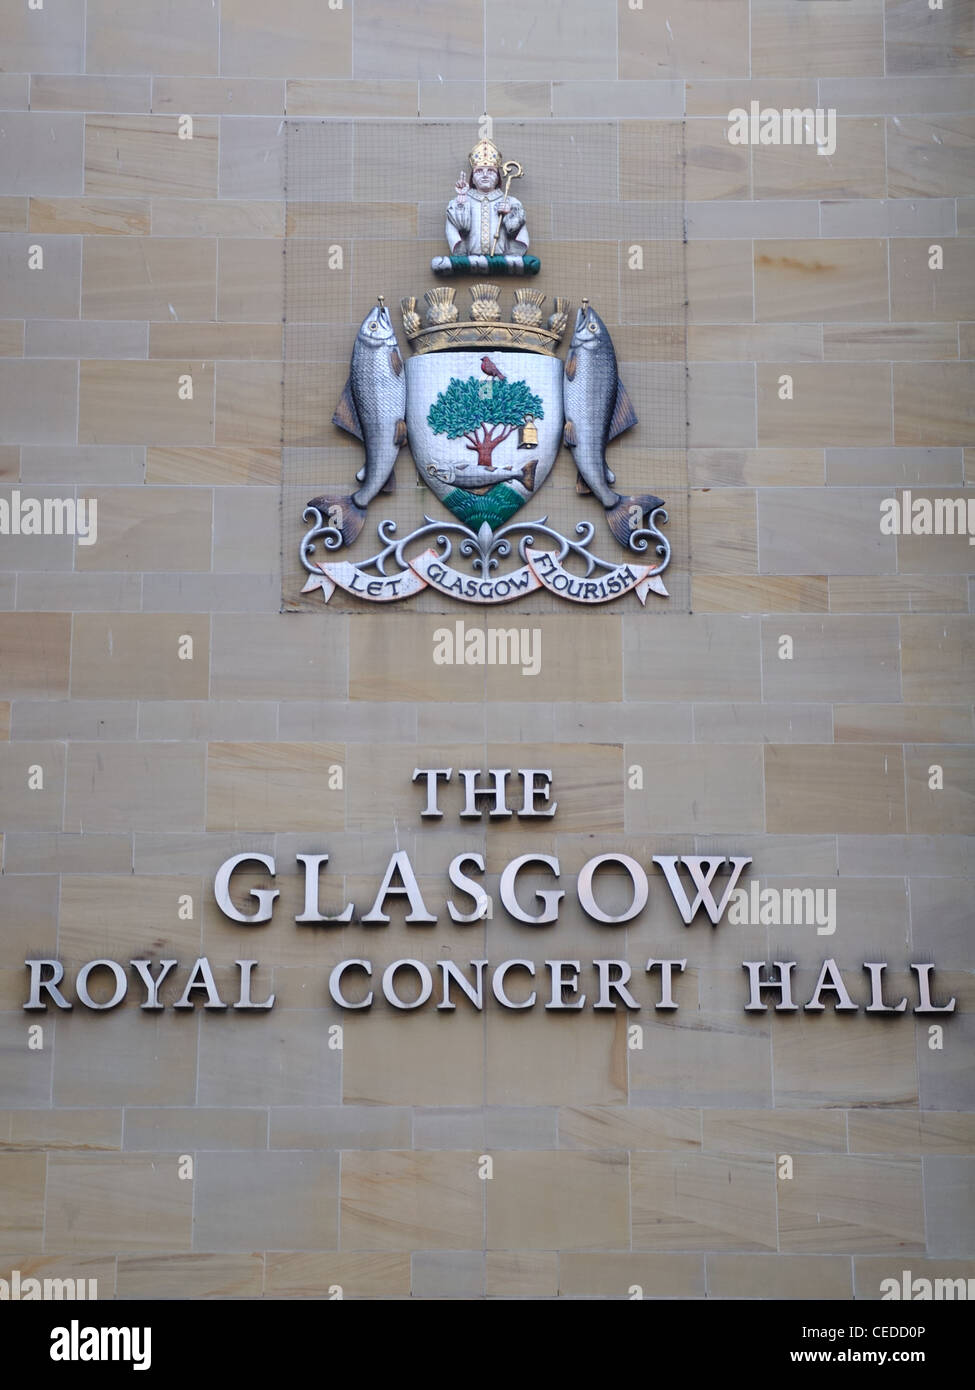 The Glasgow coat of arms, 'Let Glasgow Flourish' on the wall of the Royal Glasgow Concert Hall, Scotland, - Stock Image